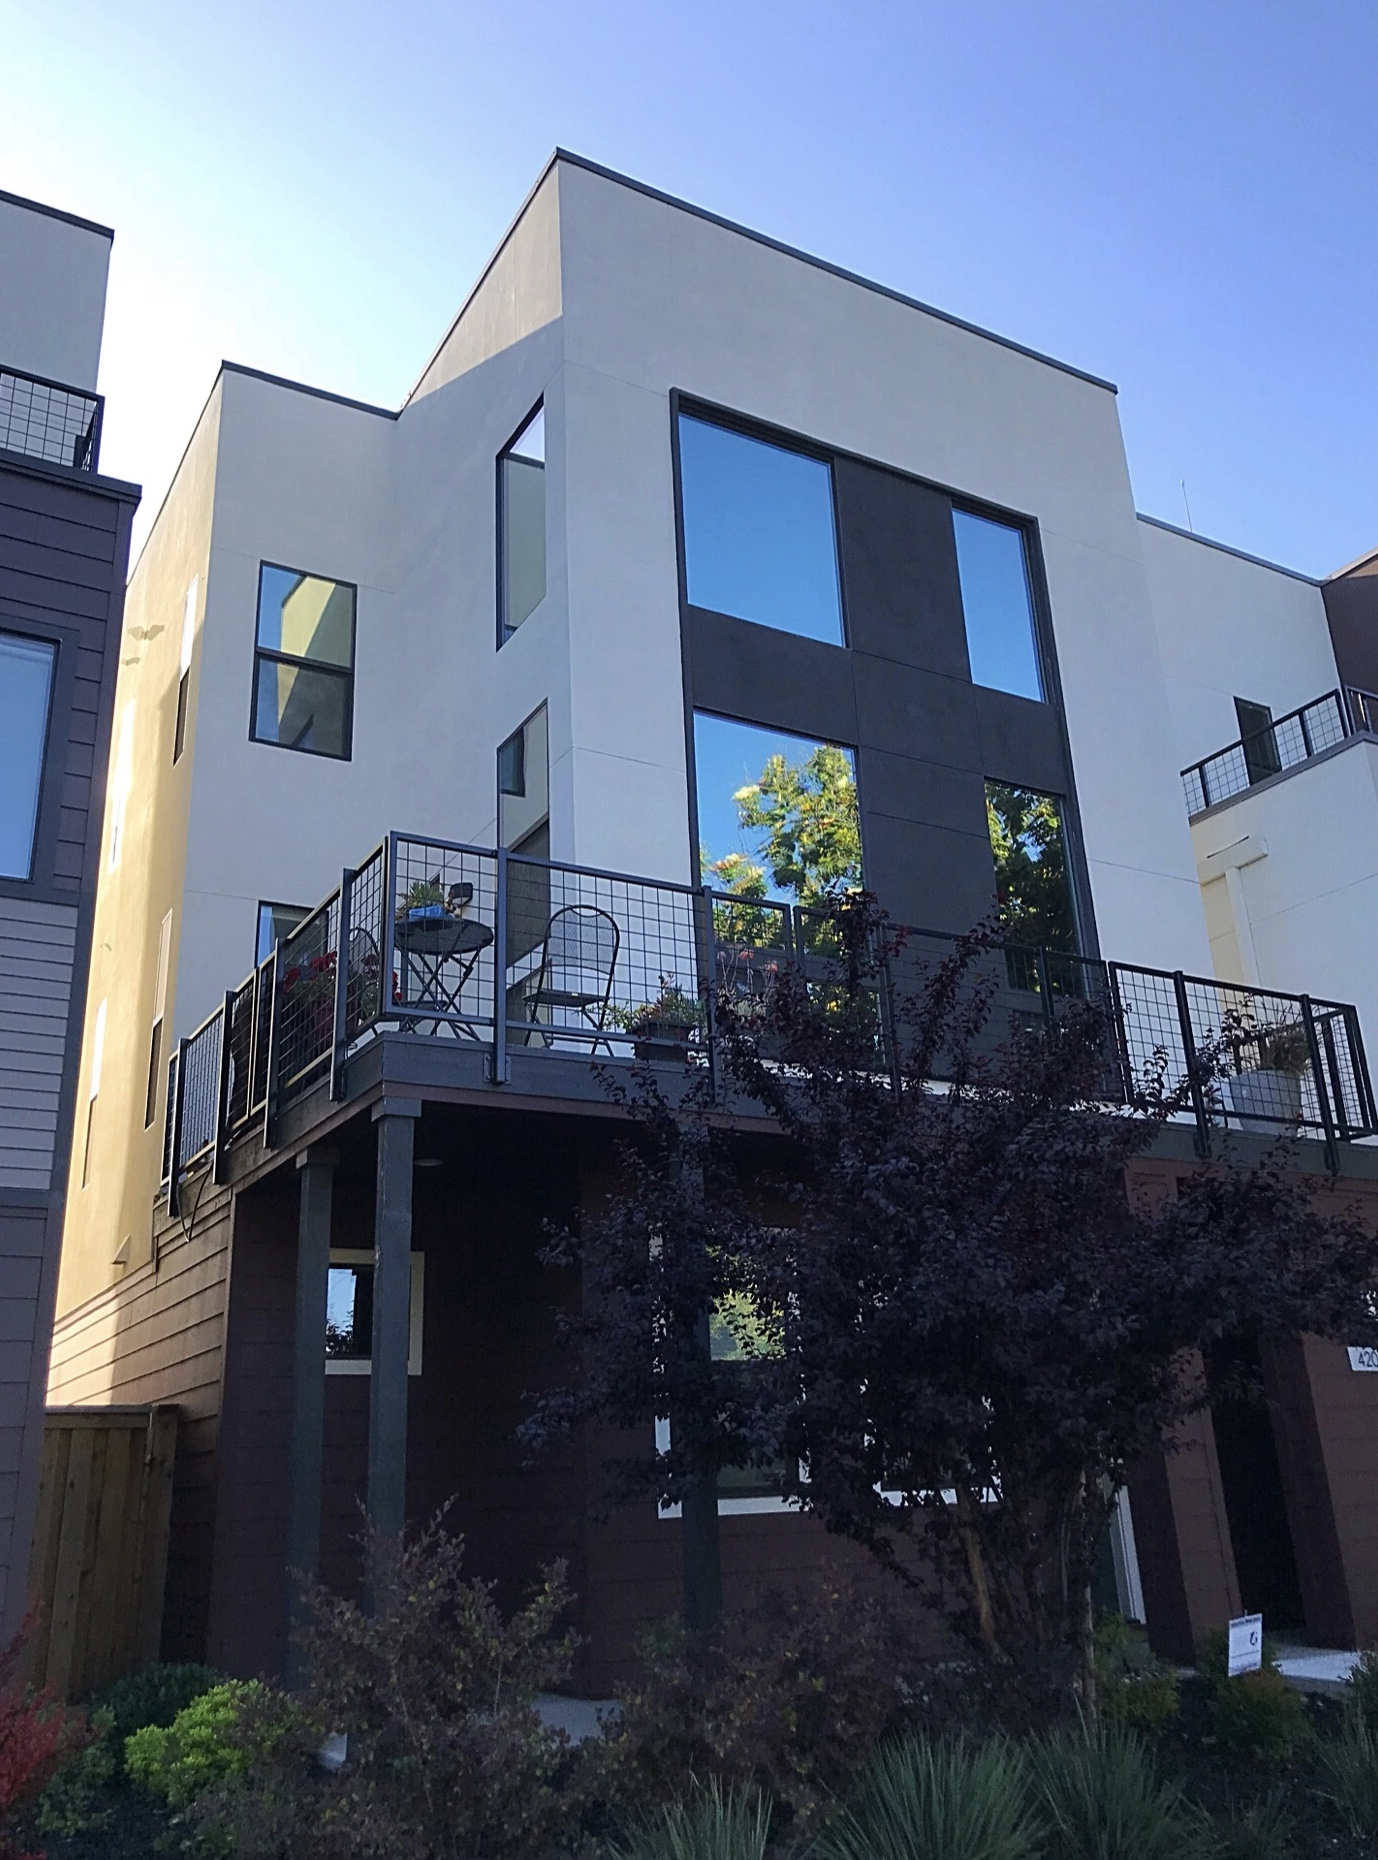 SuperAlloy 15% on all windows of this 3 story home